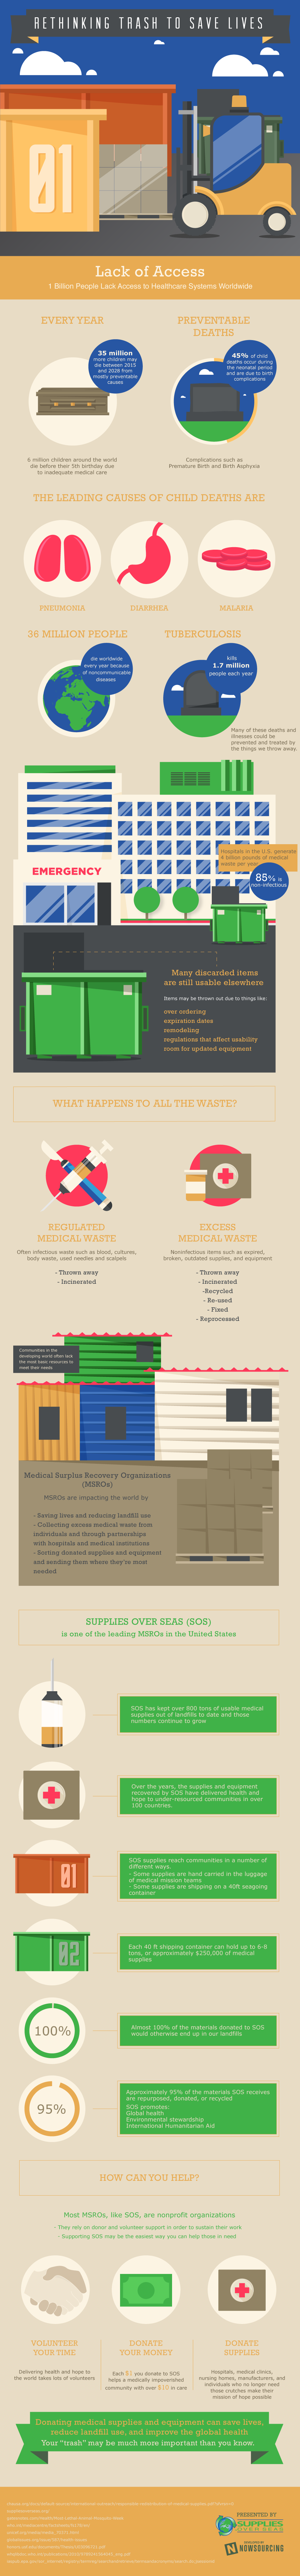 Rethinking Trash To Save Lives